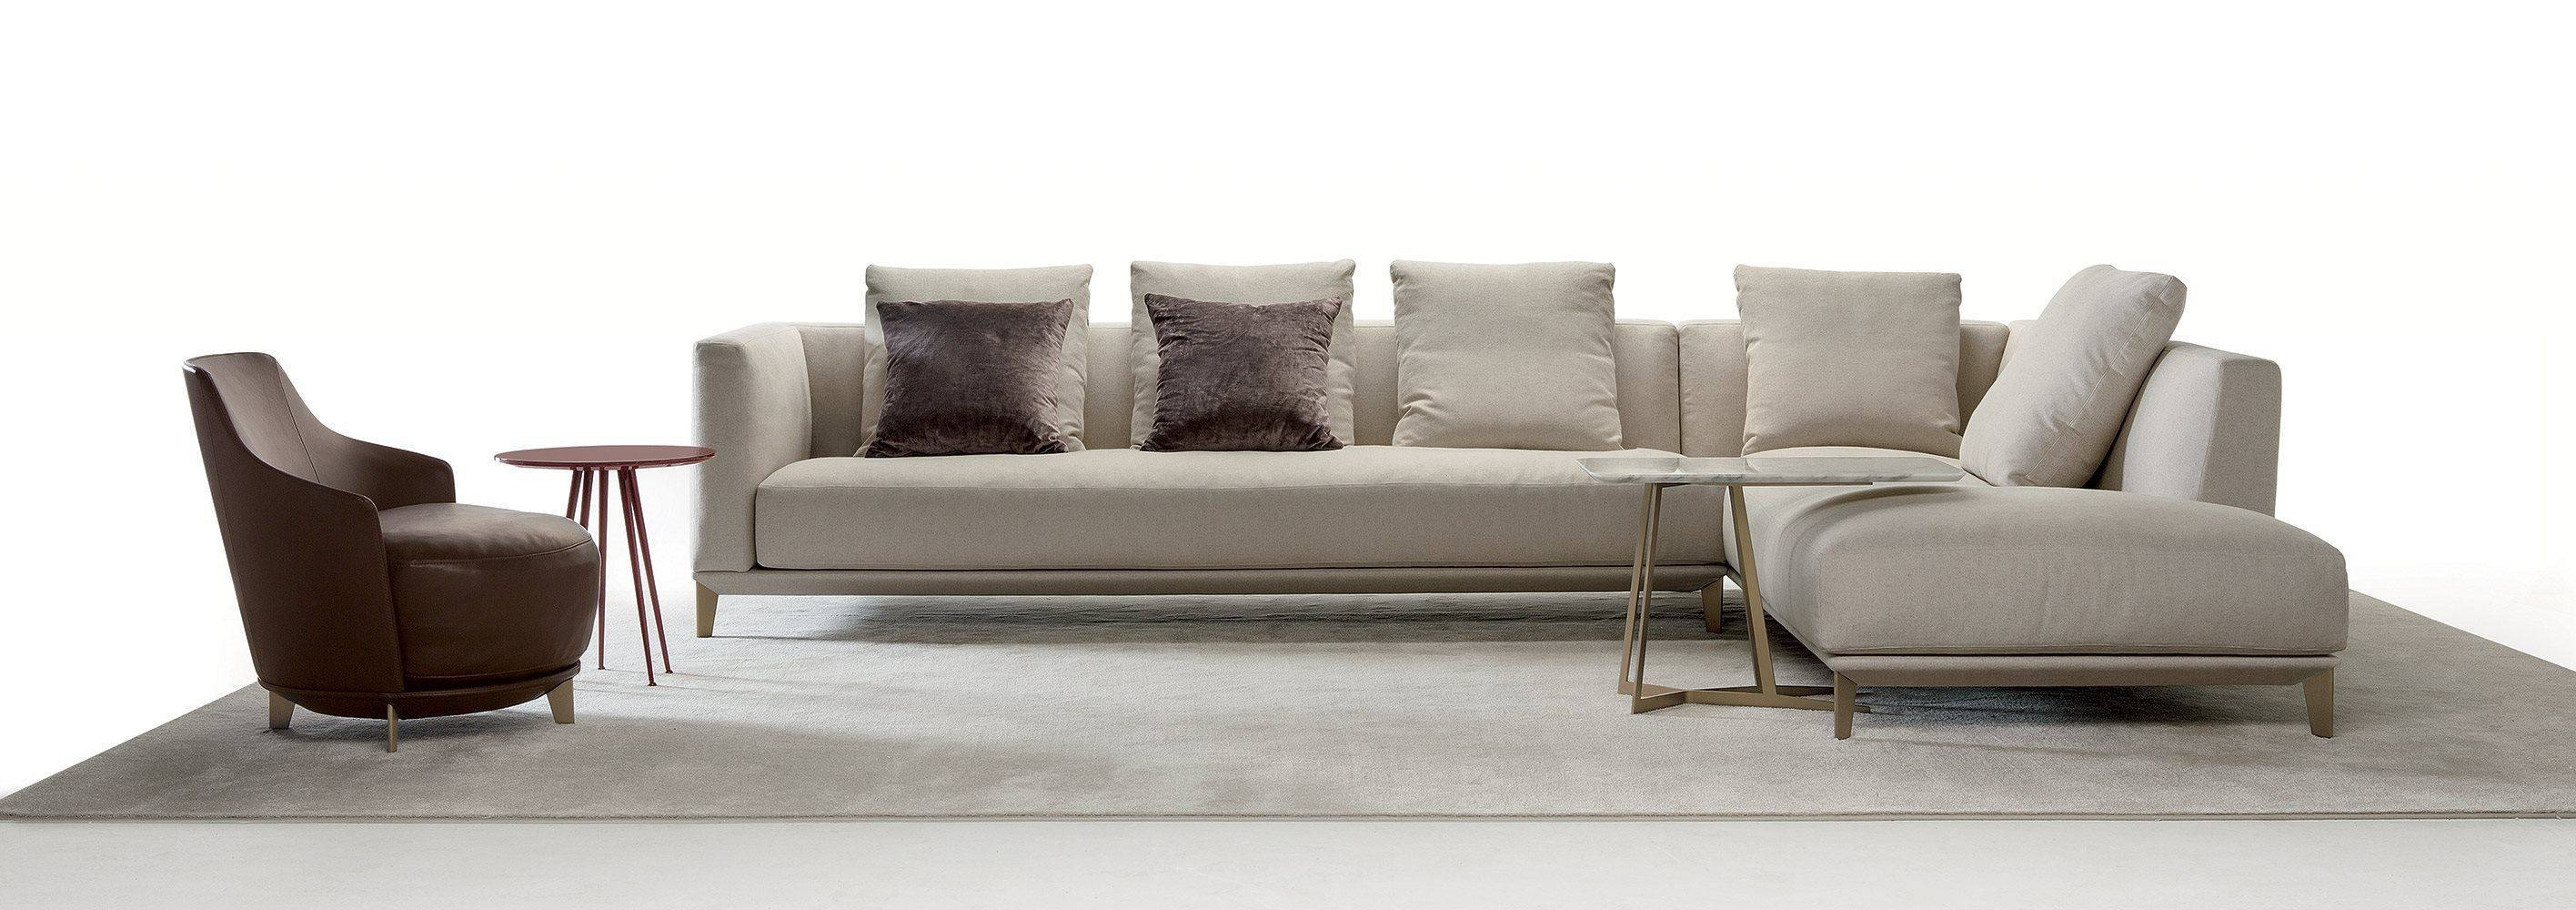 Corner Sofa / Modular / Contemporary / Fabric - Dylancastello in Contemporary Fabric Sofas (Image 9 of 30)